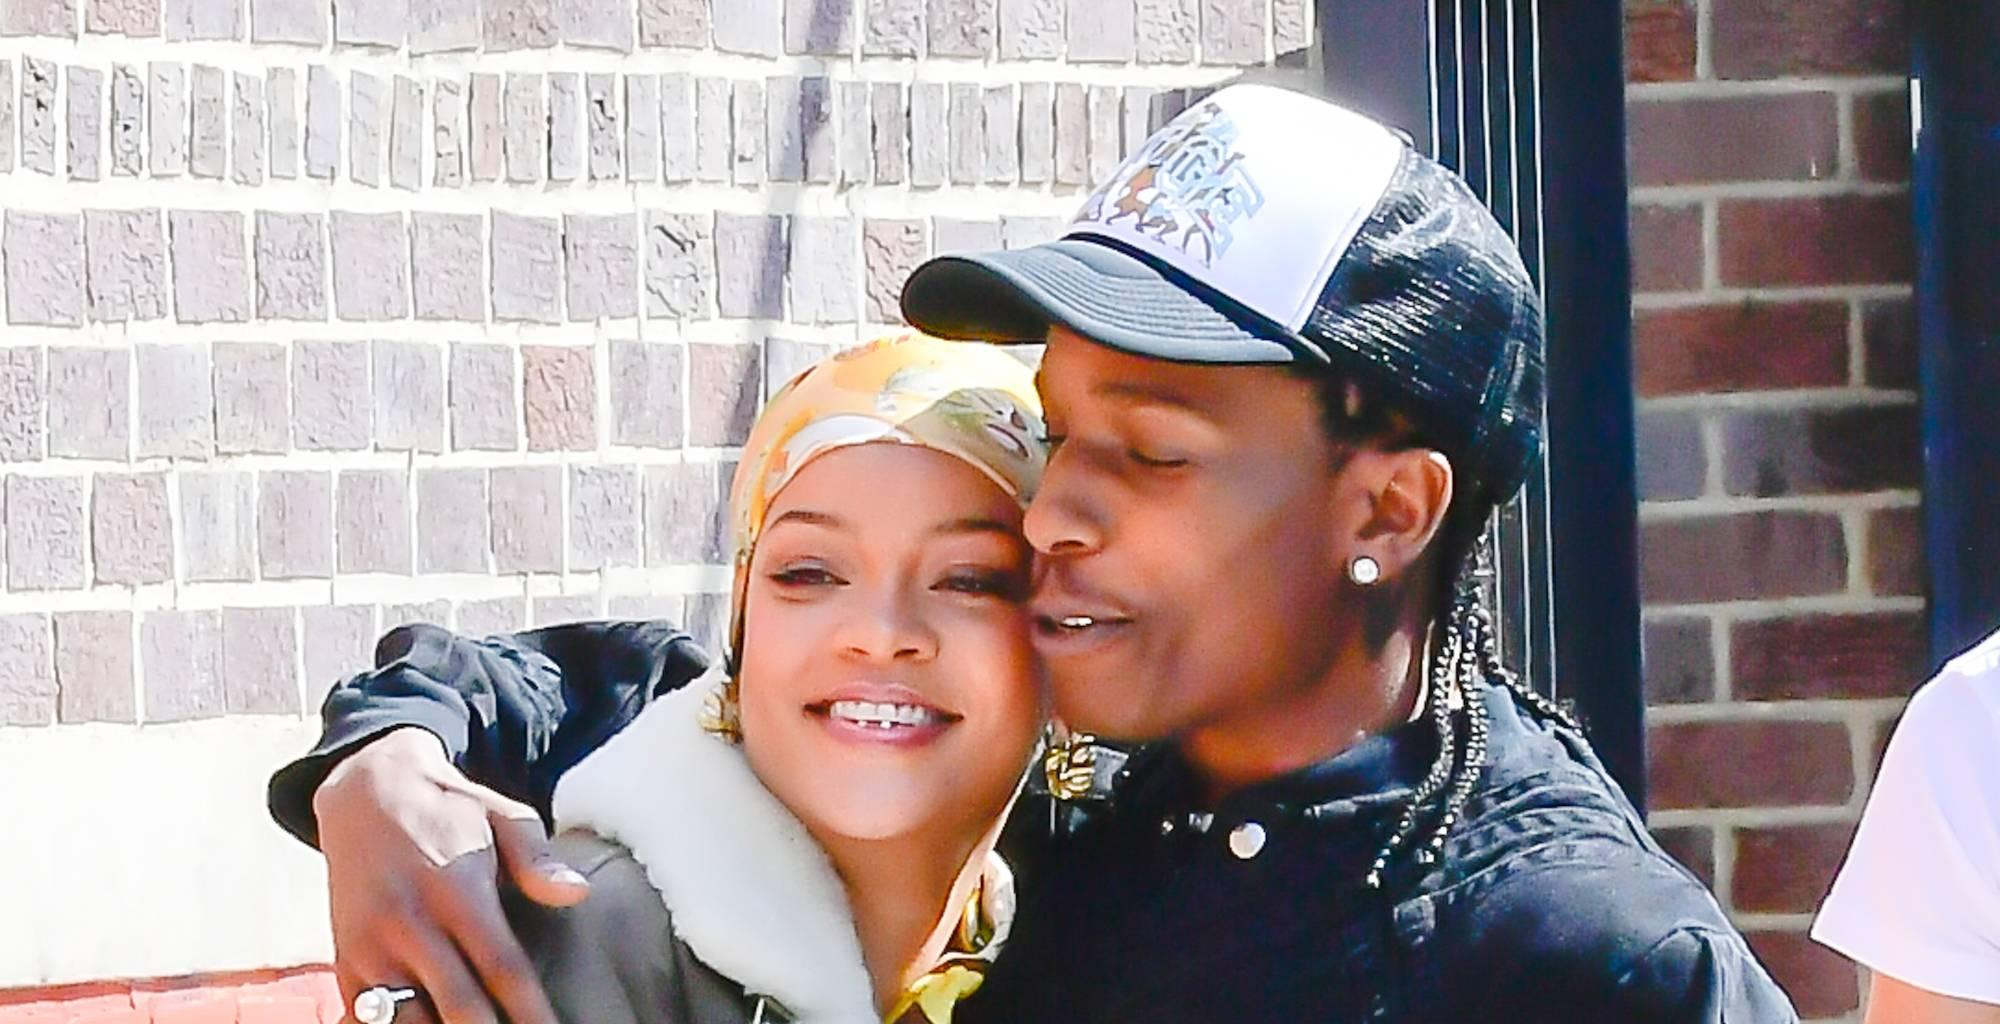 Rihanna And ASAP Rocky Have 'Natural Chemistry' Source Says - Their Love Is 'Sincere And Real!'